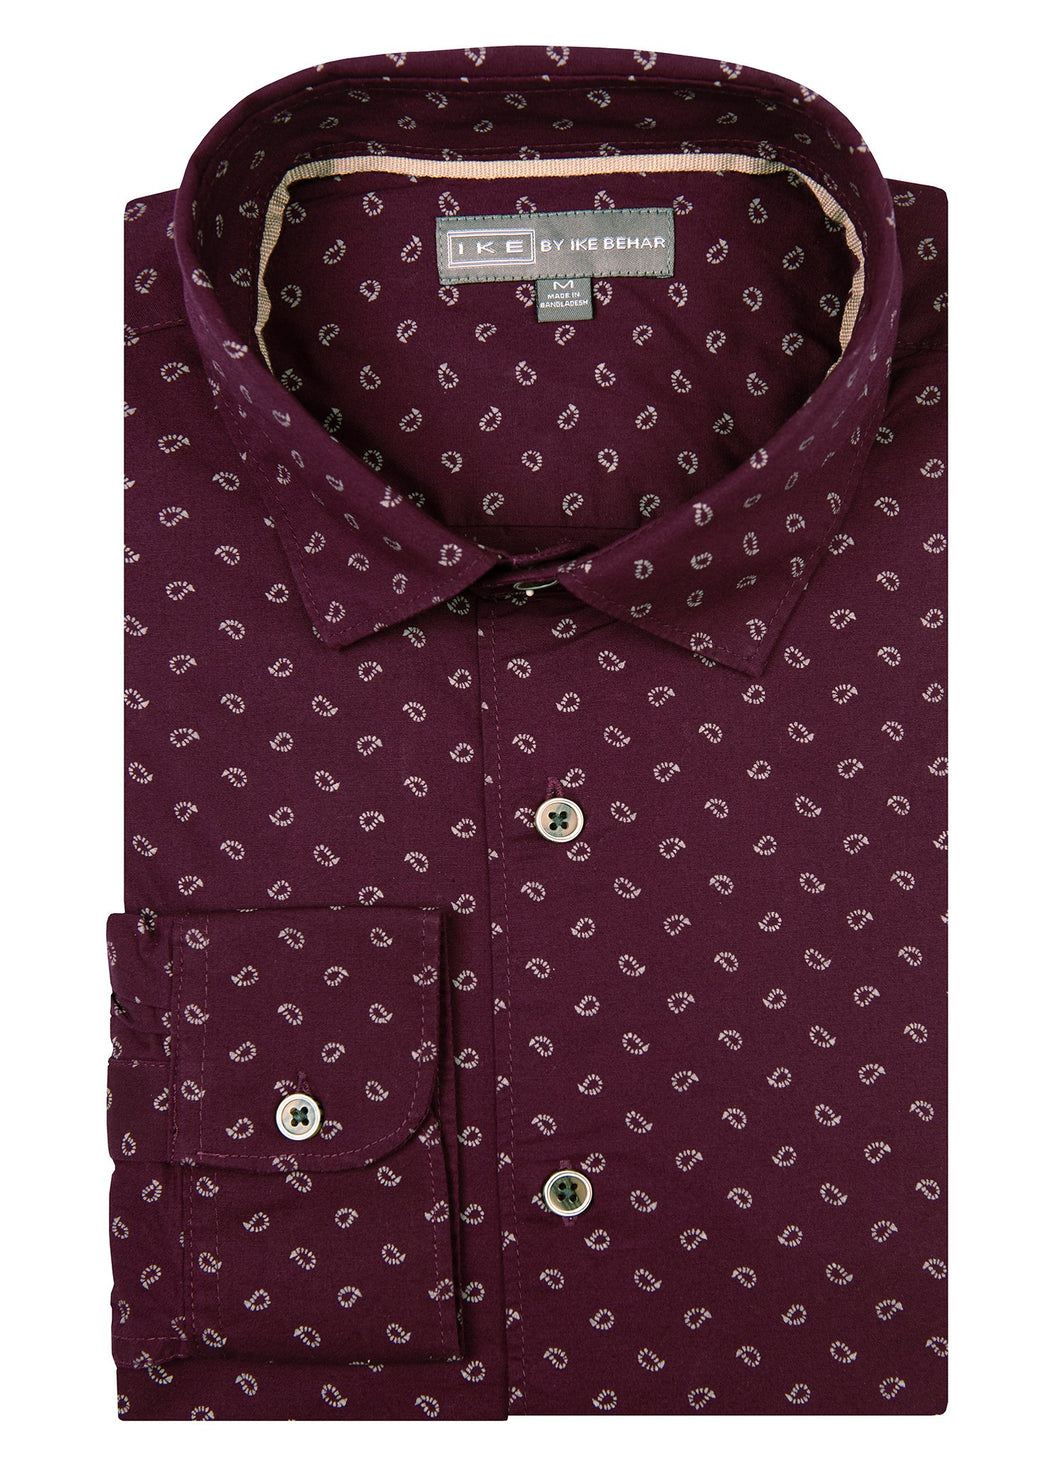 Chile Baby Paisley Print Ike by Ike Behar Sport Shirt